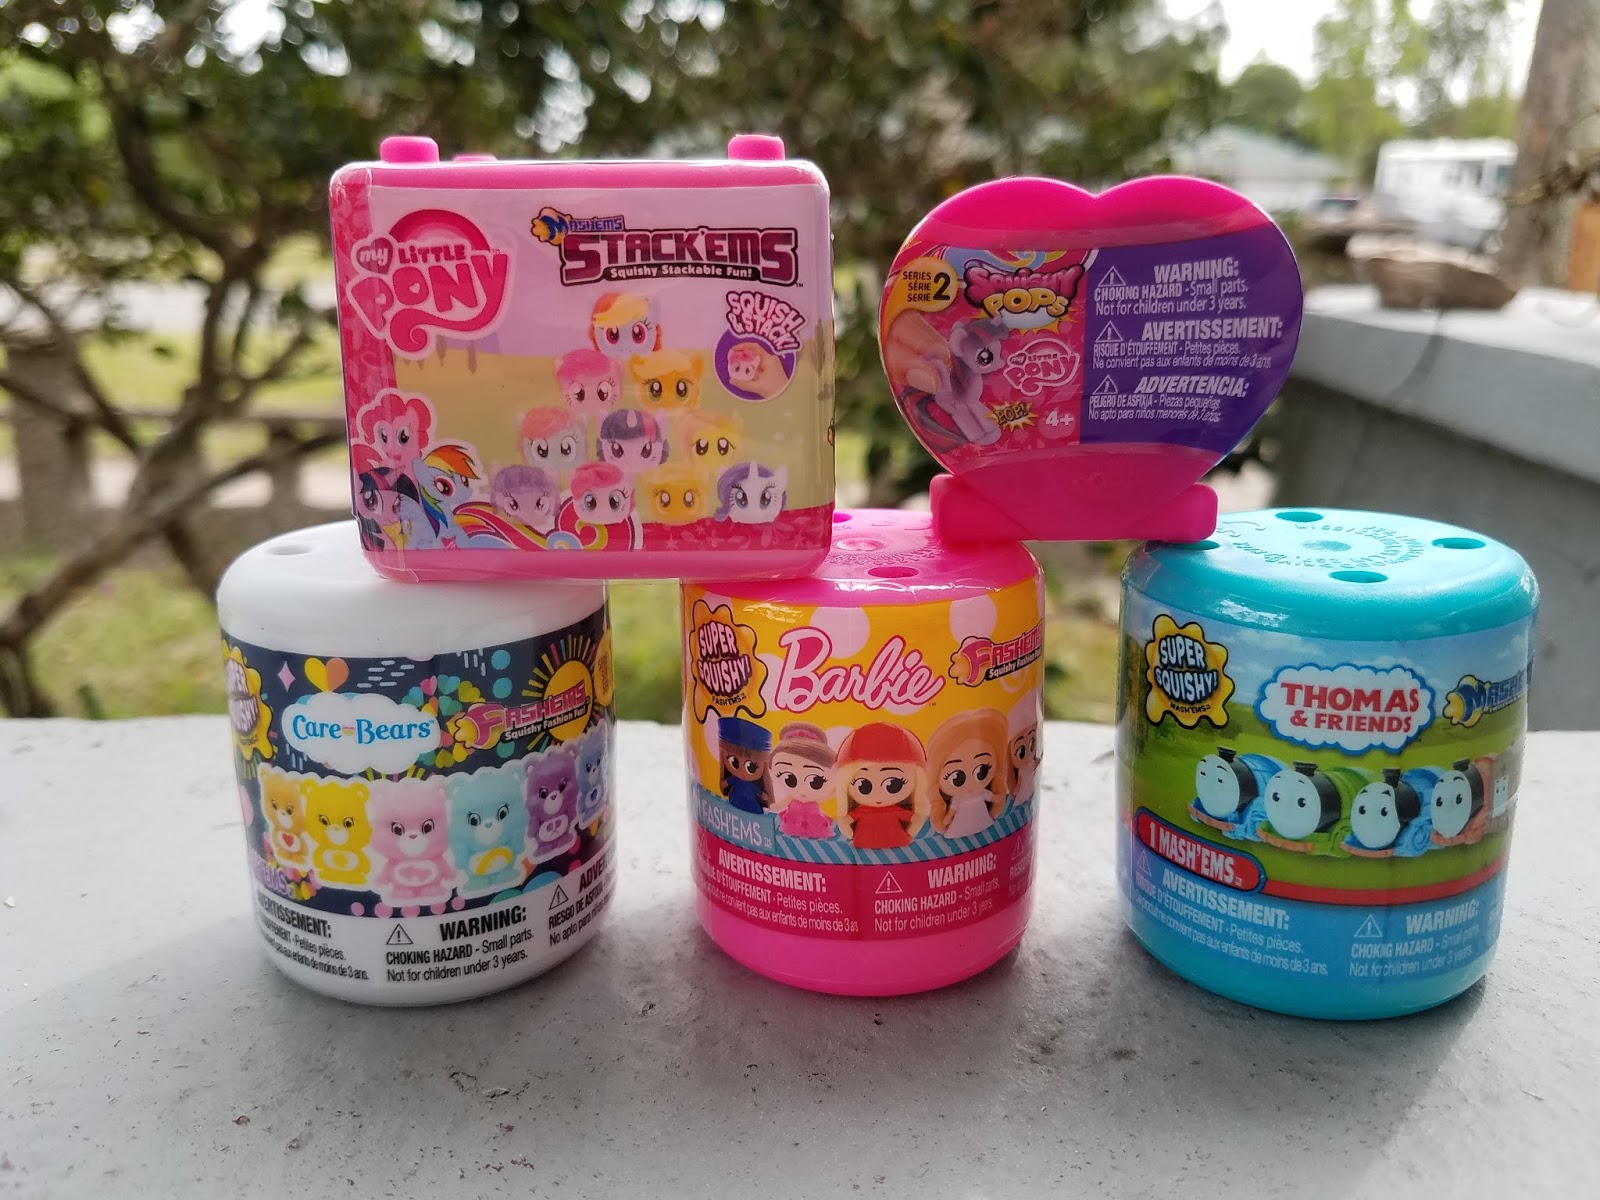 The abcd diaries easter gift idea mash ems fash ems and mashems fashems and squishy pops are a highly collectible toy that all kids will love hidden inside capsules they hold the thrill of a concealed negle Choice Image